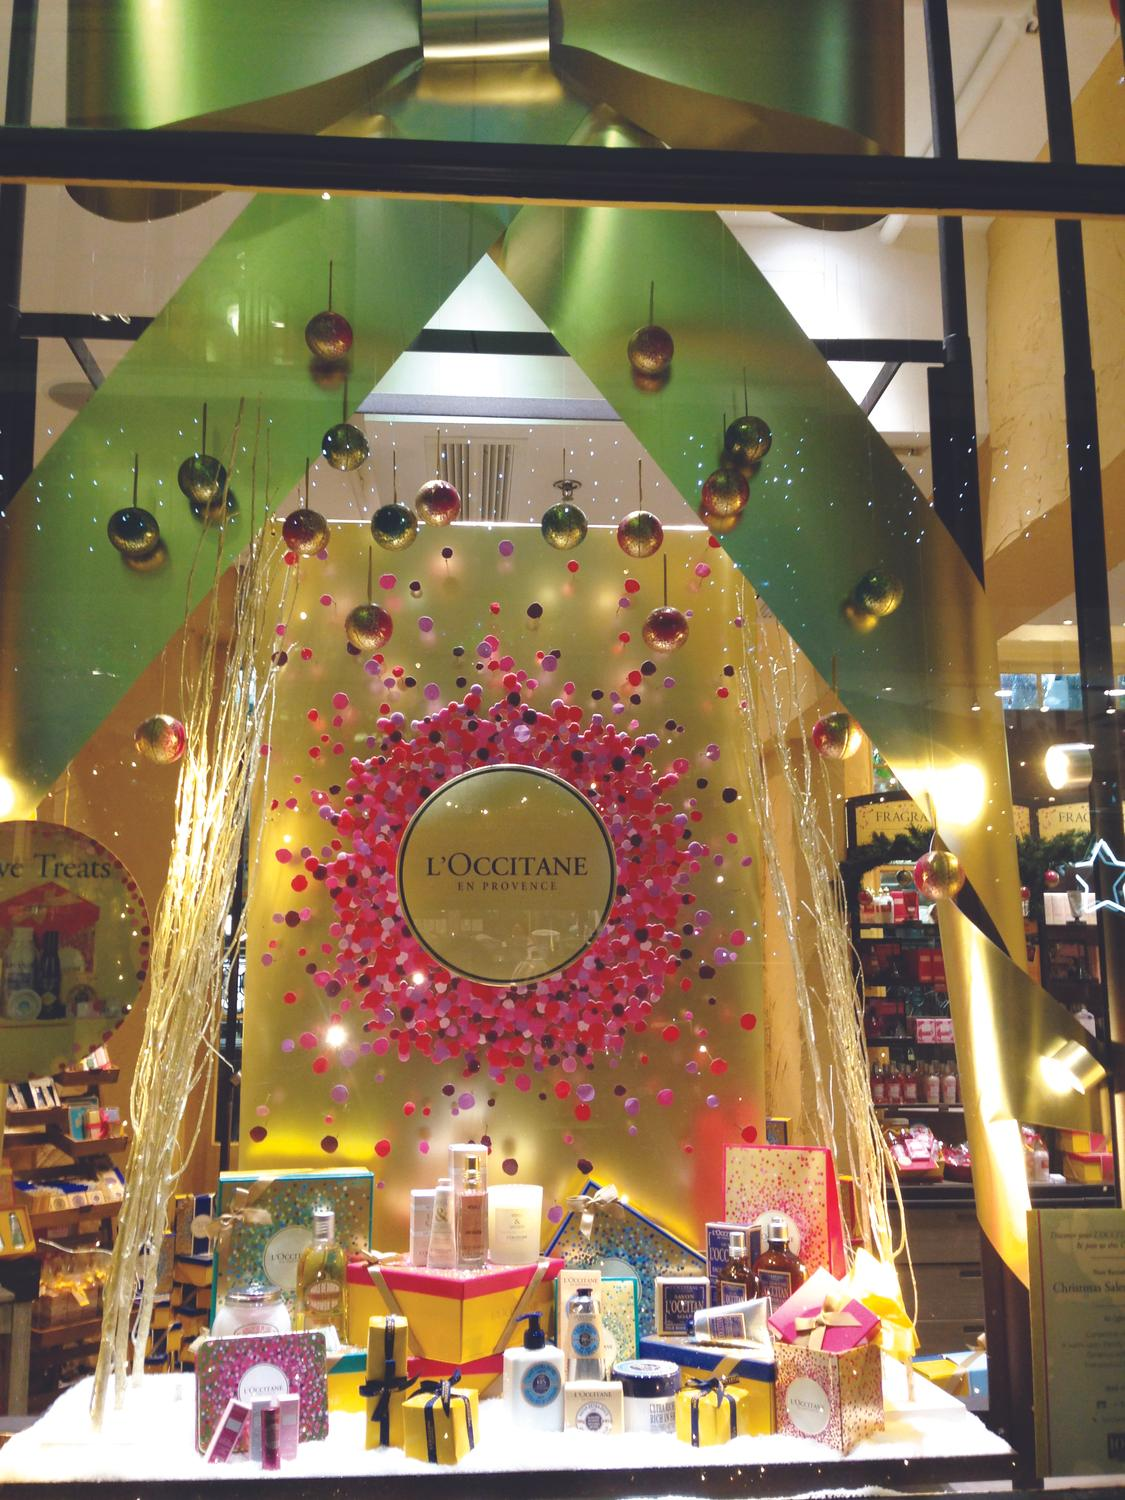 L'Occitane window display